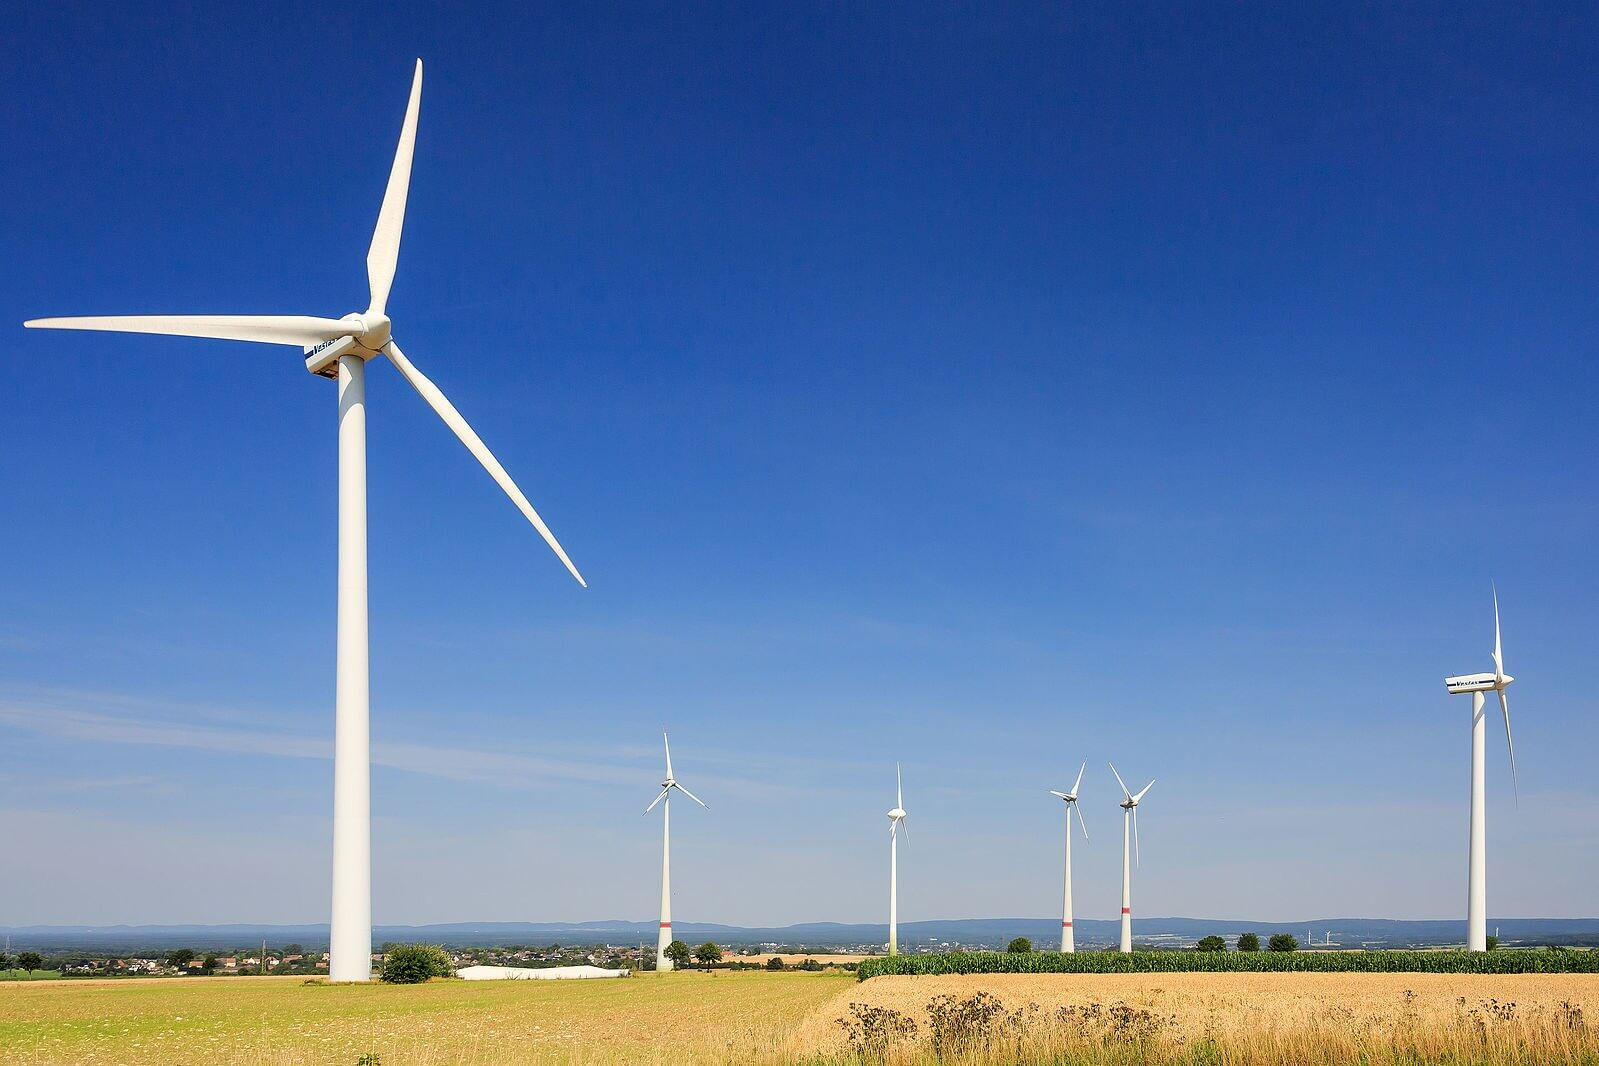 Google and DeepMind bring machine learning and better efficiency to wind farms